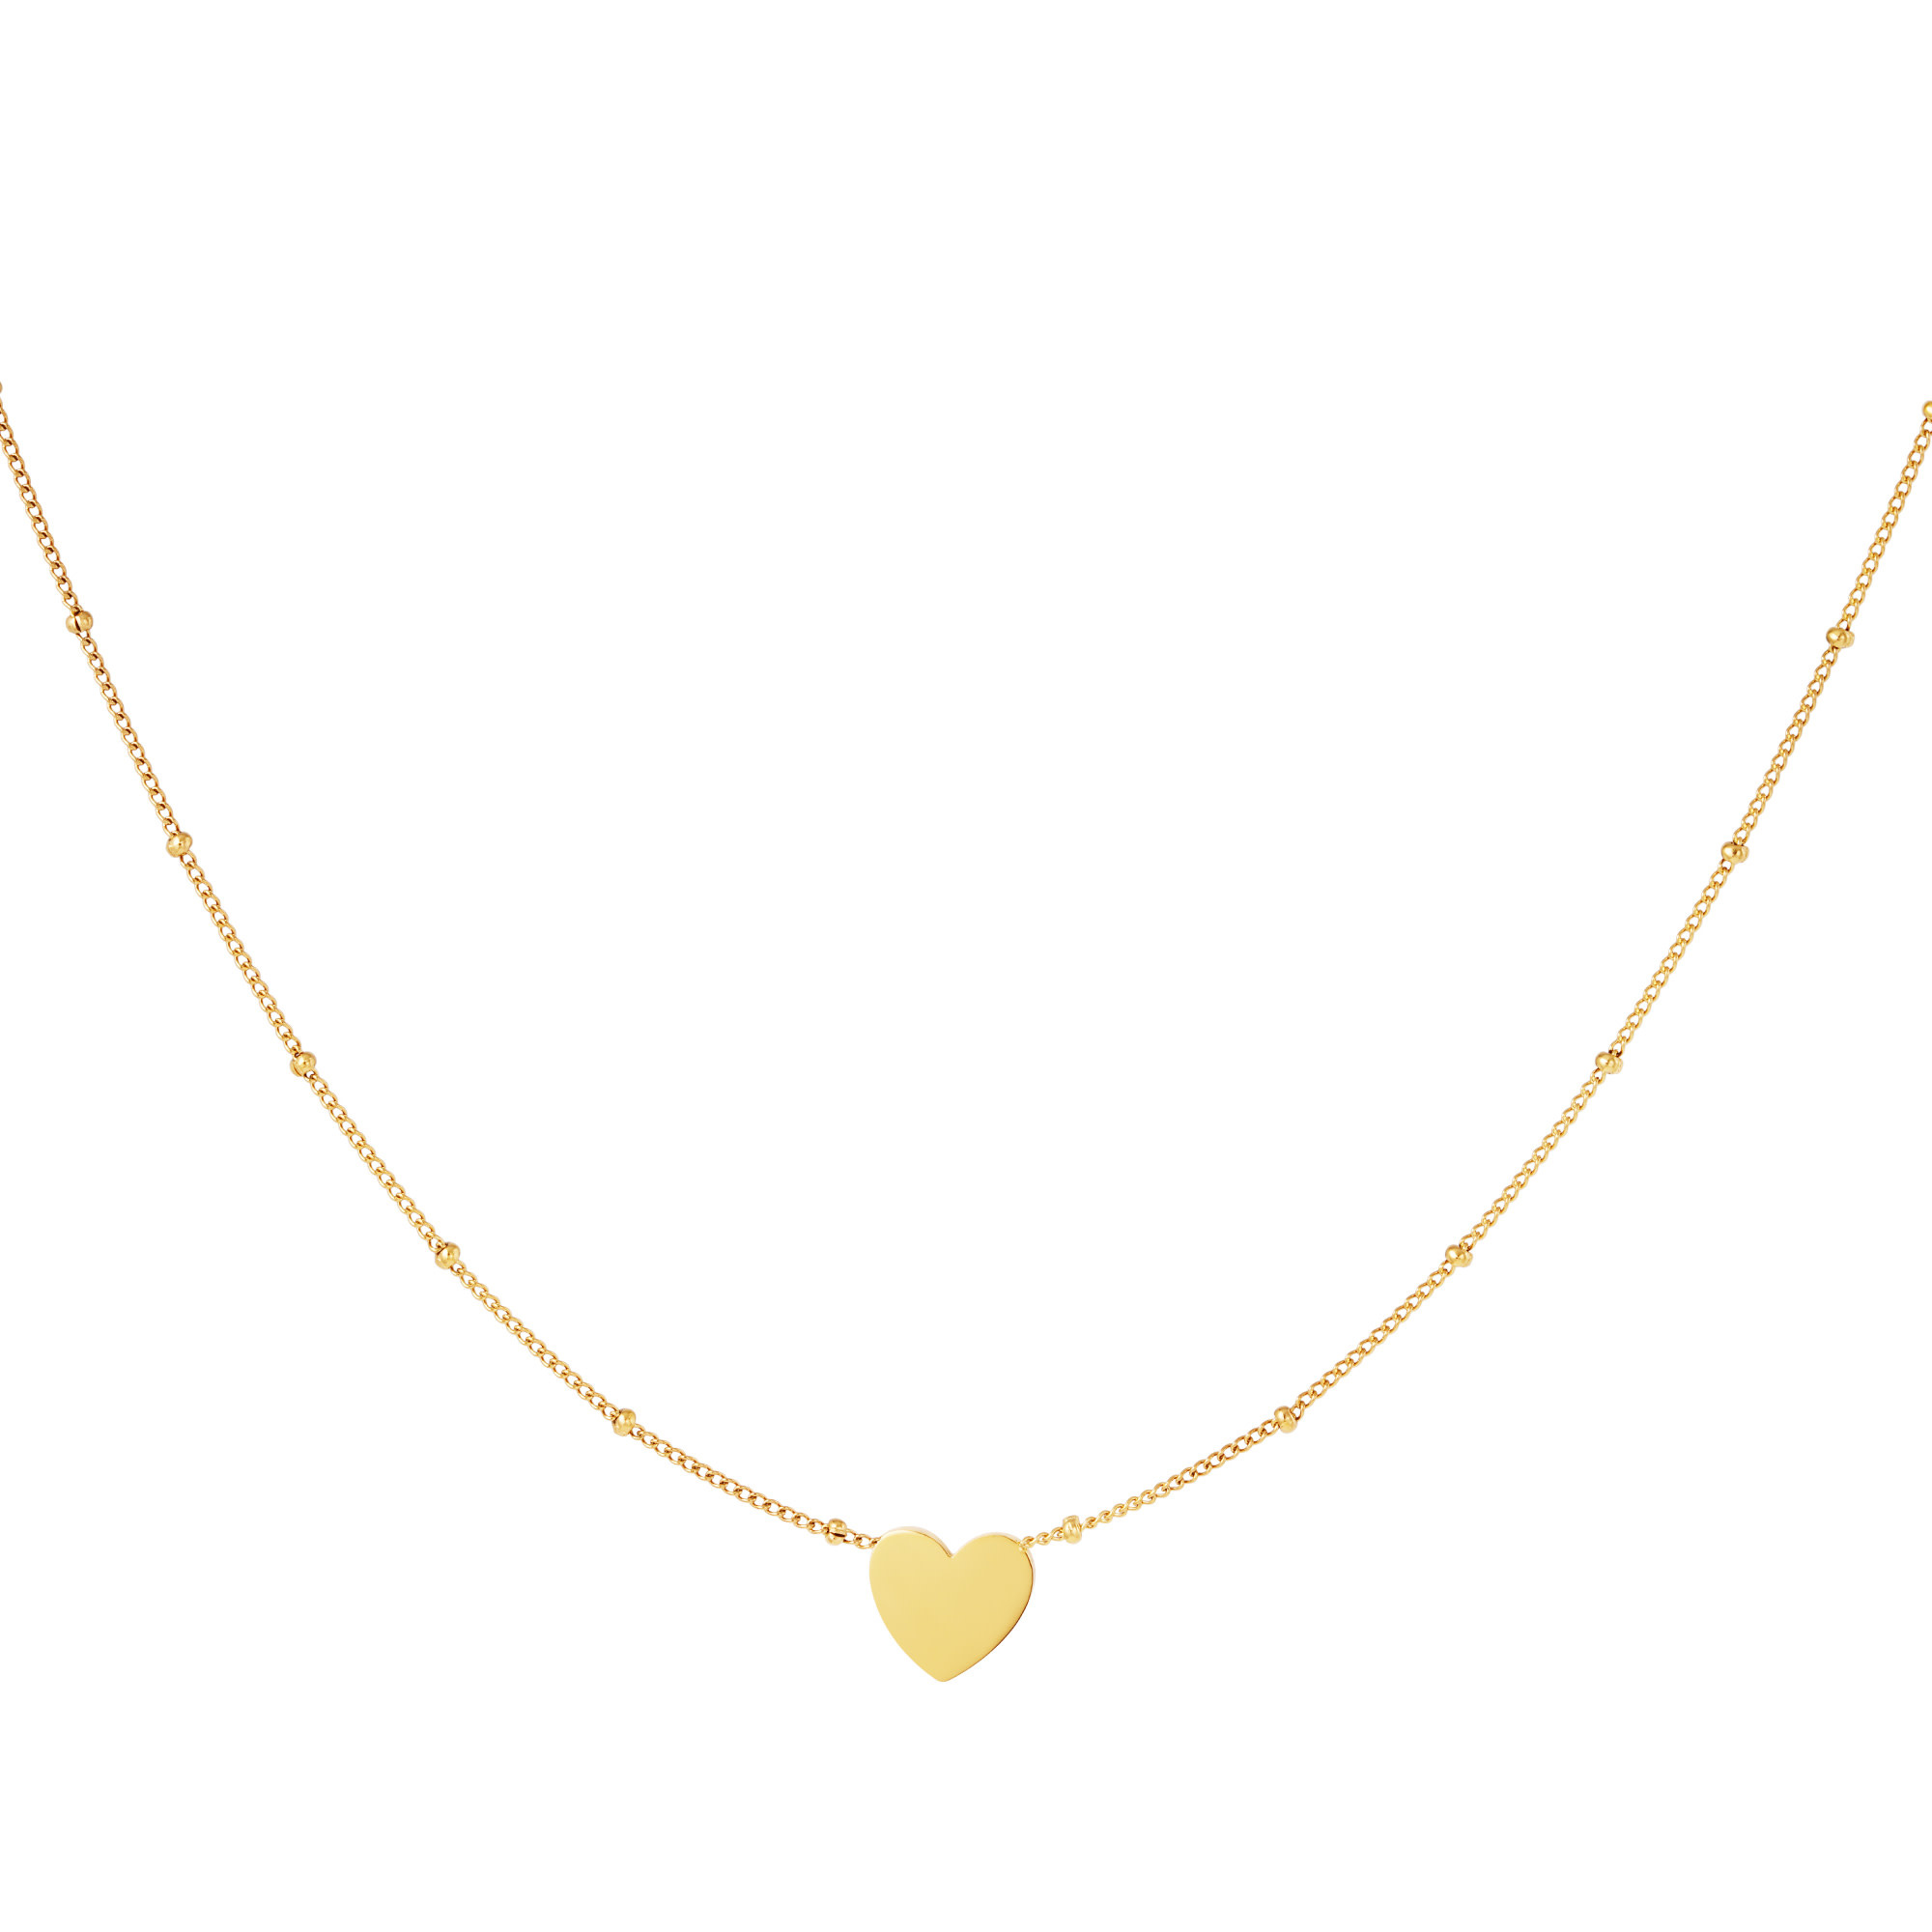 With love Necklace dotted heart gold